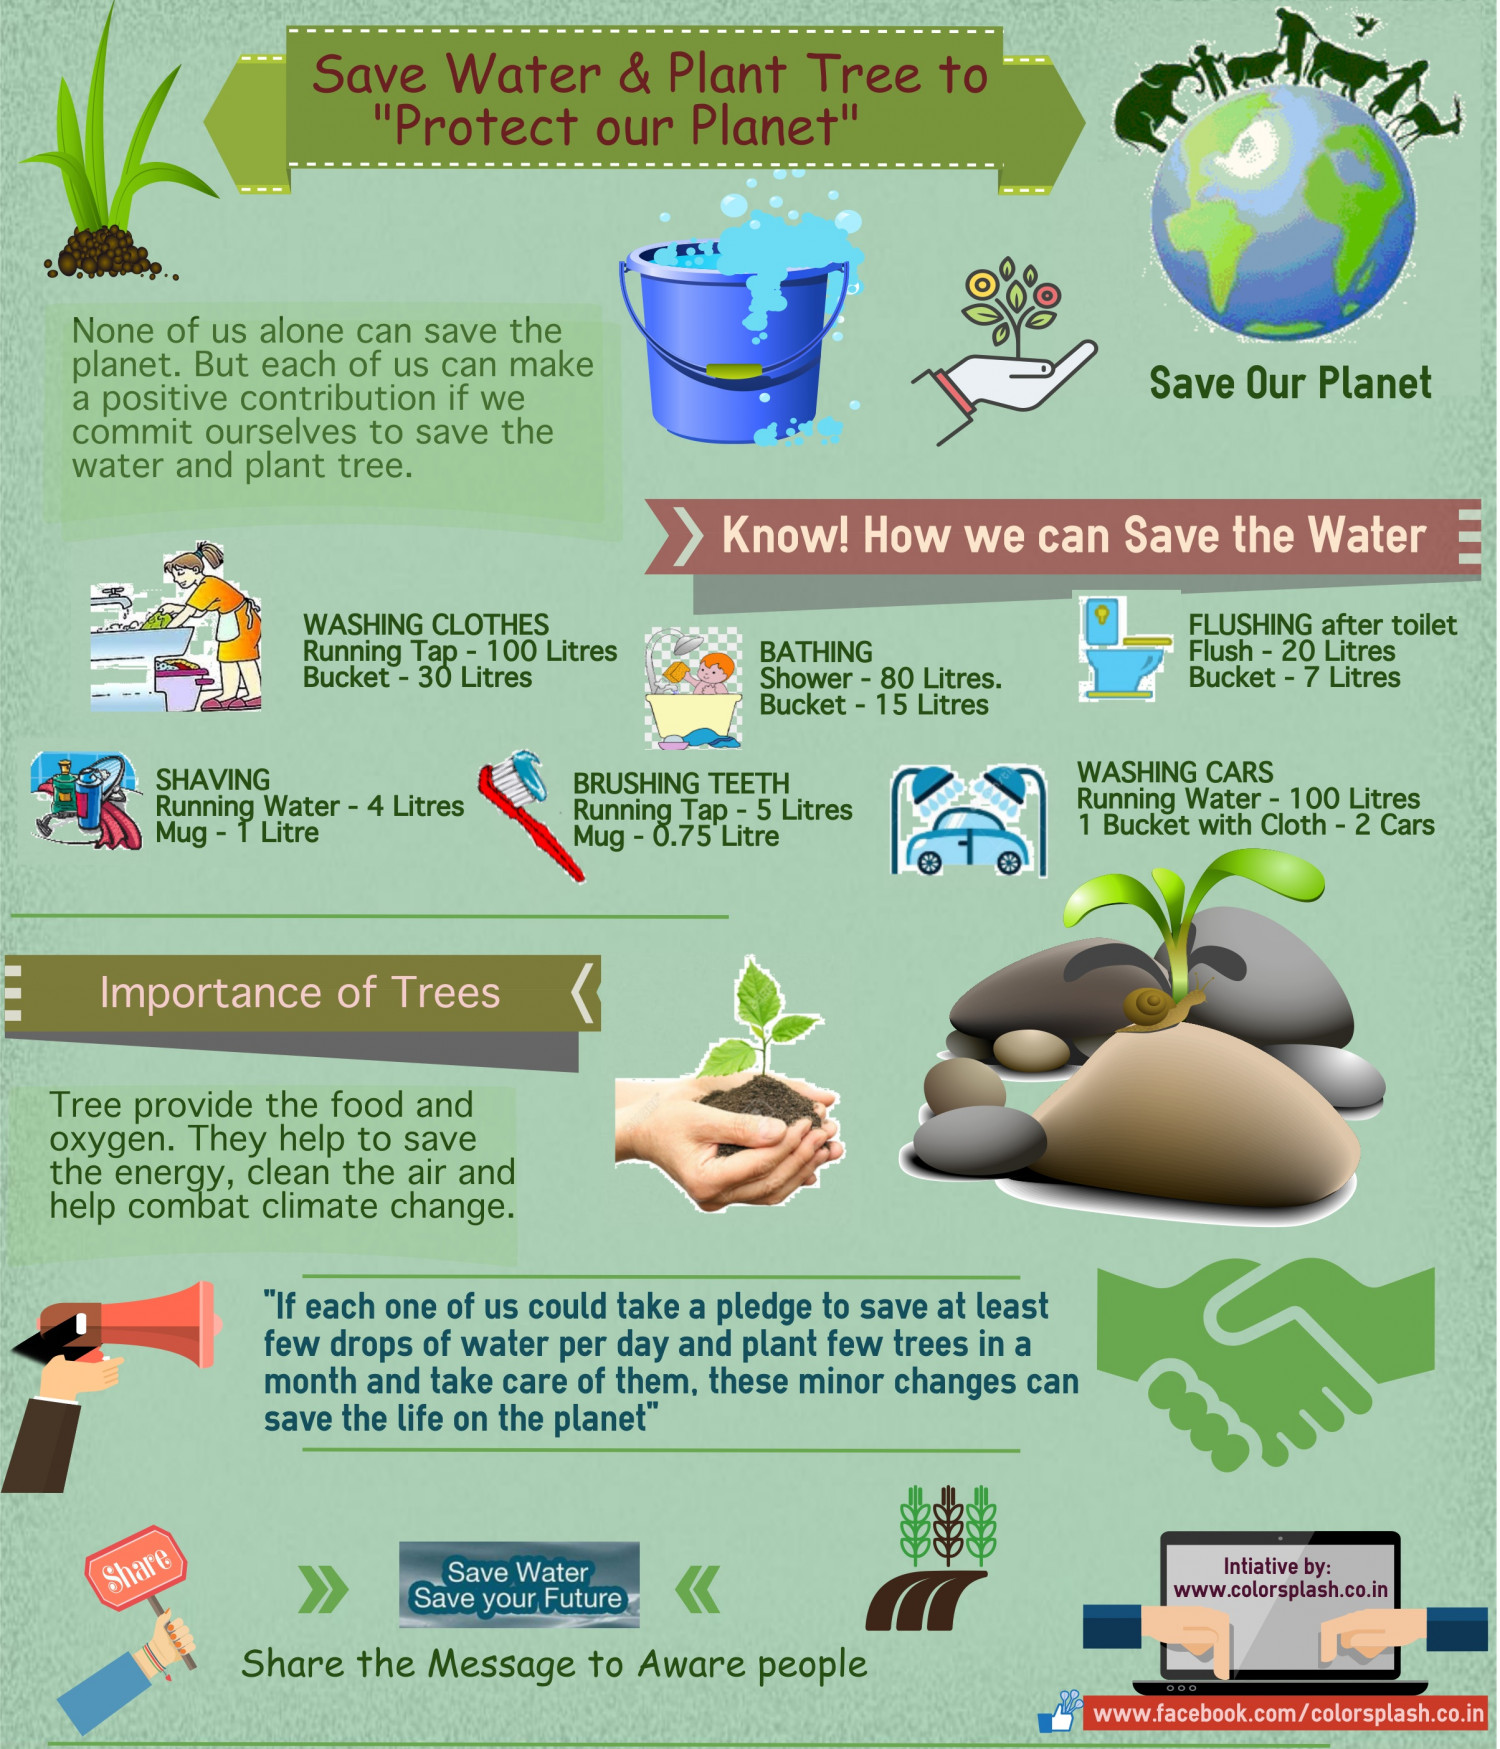 Save Water & Plant Trees to Save our Planet